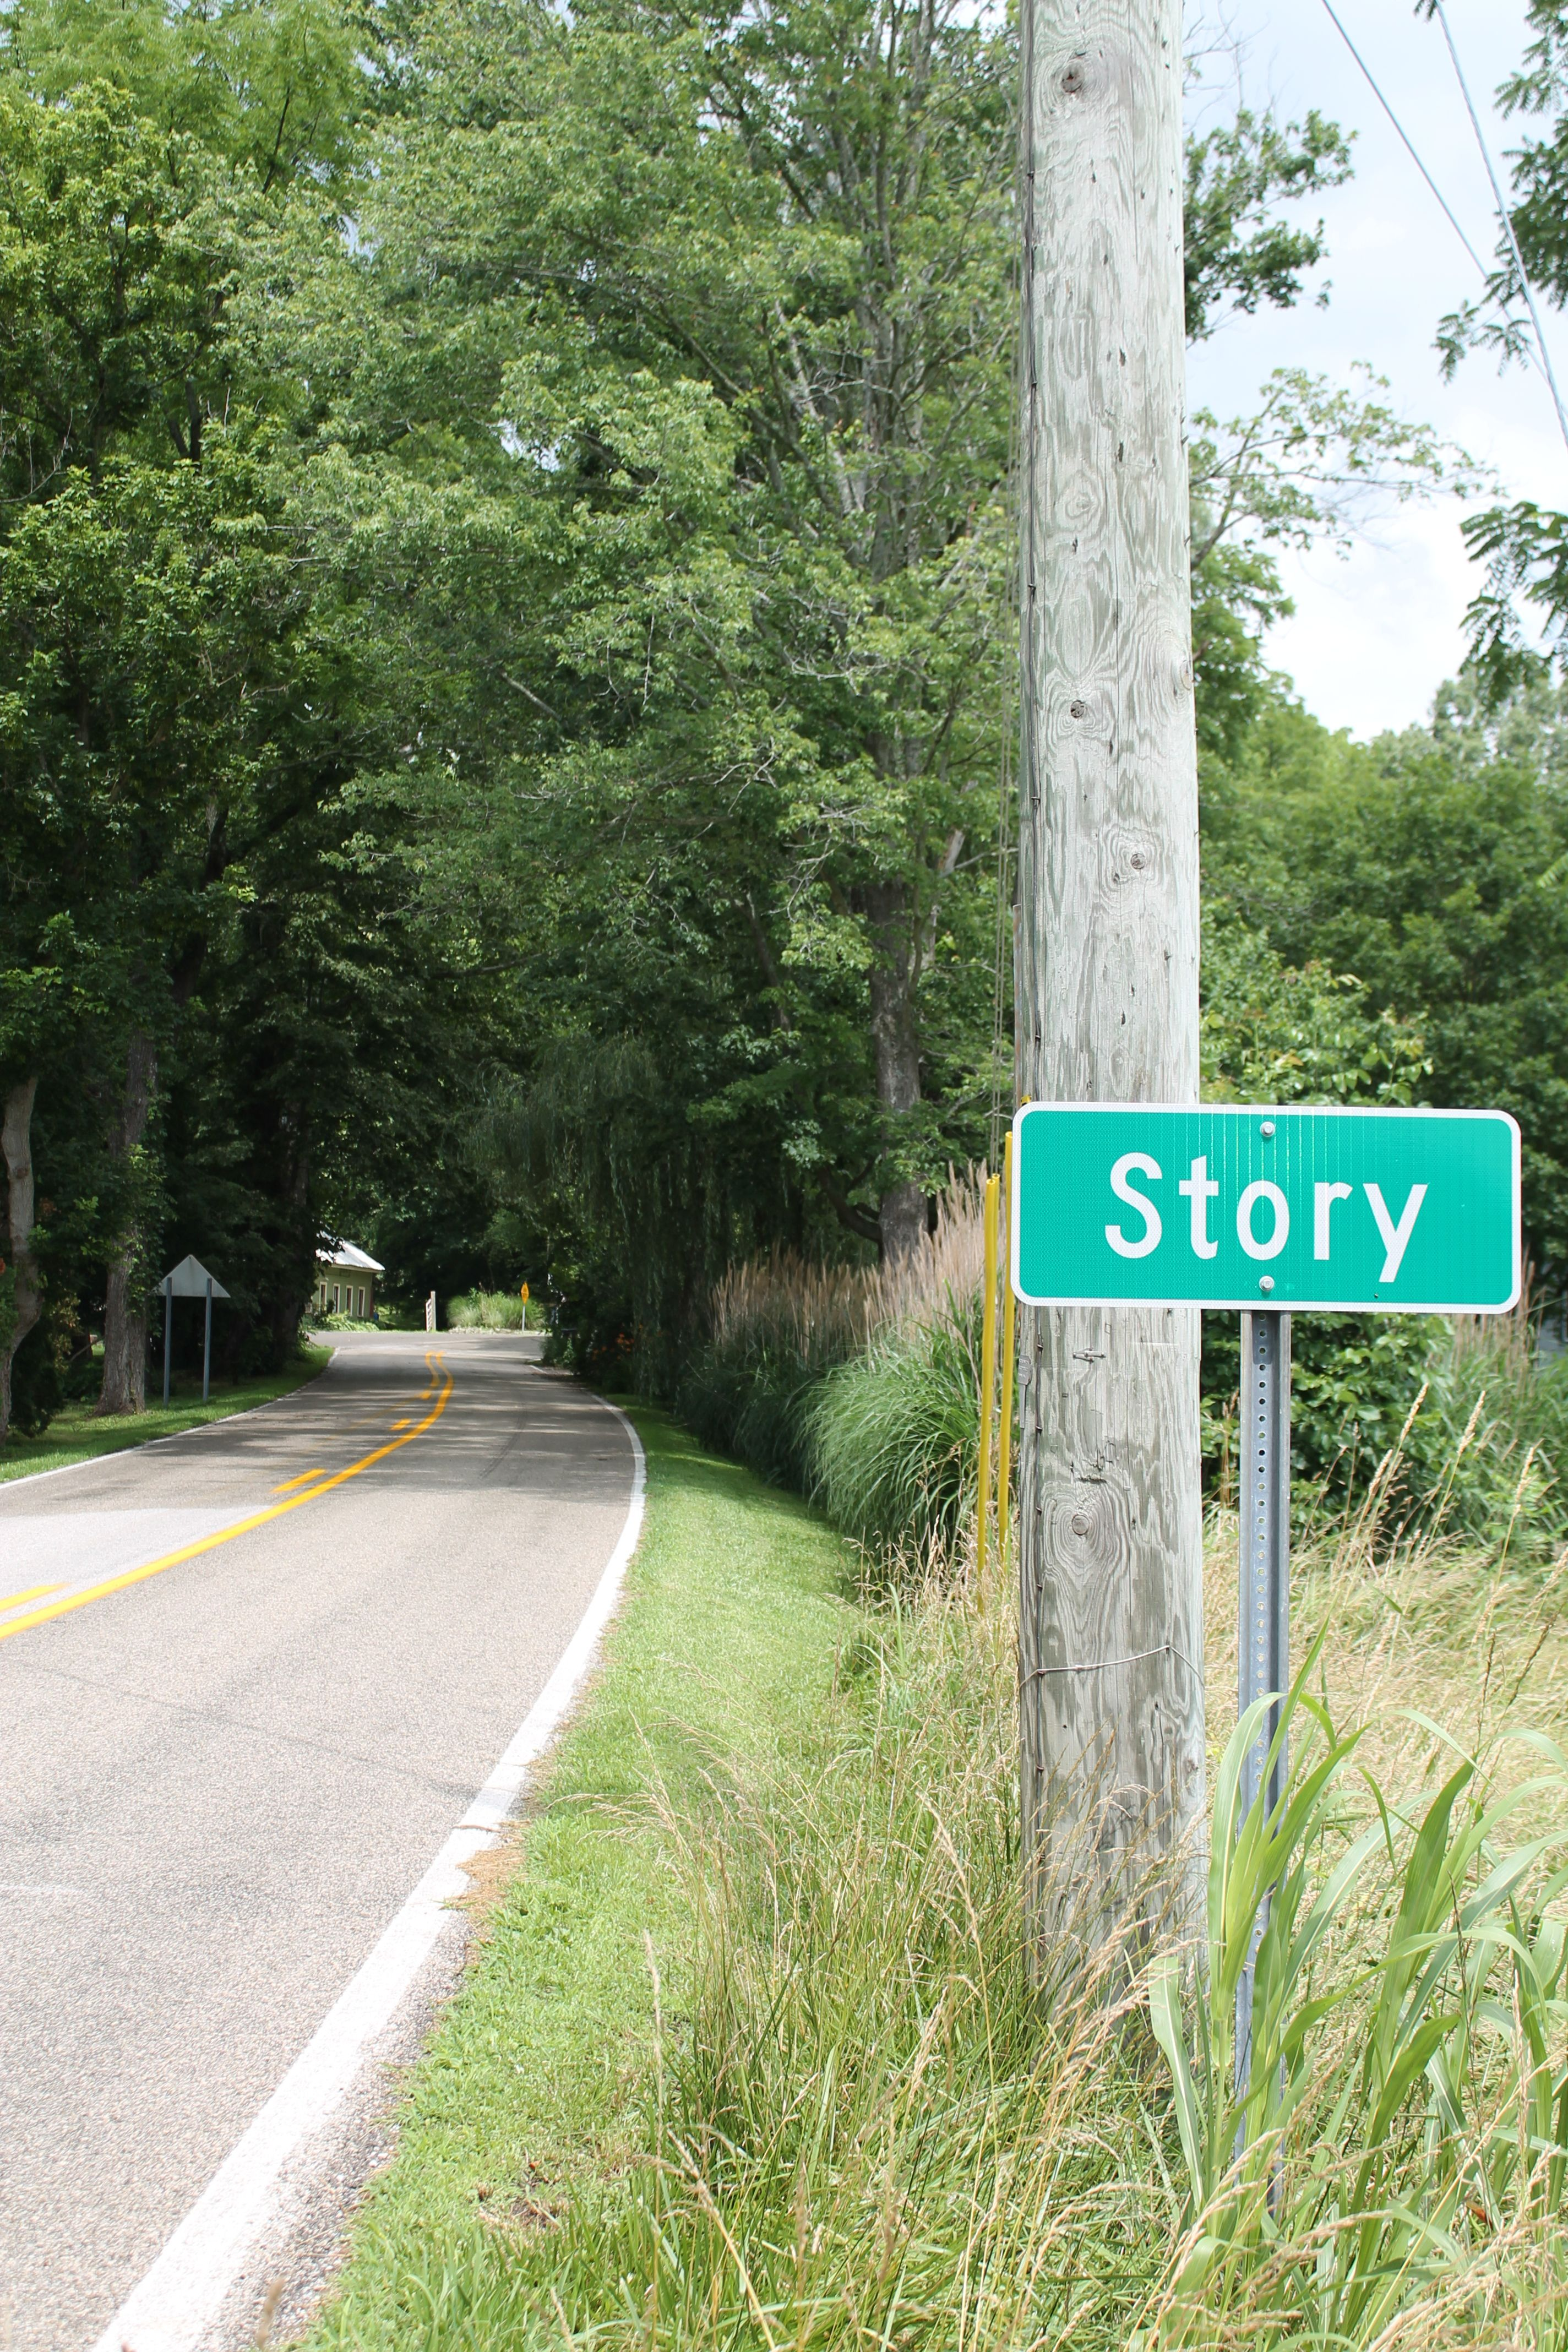 Story, Indiana in Brown County. (With images) Midwest